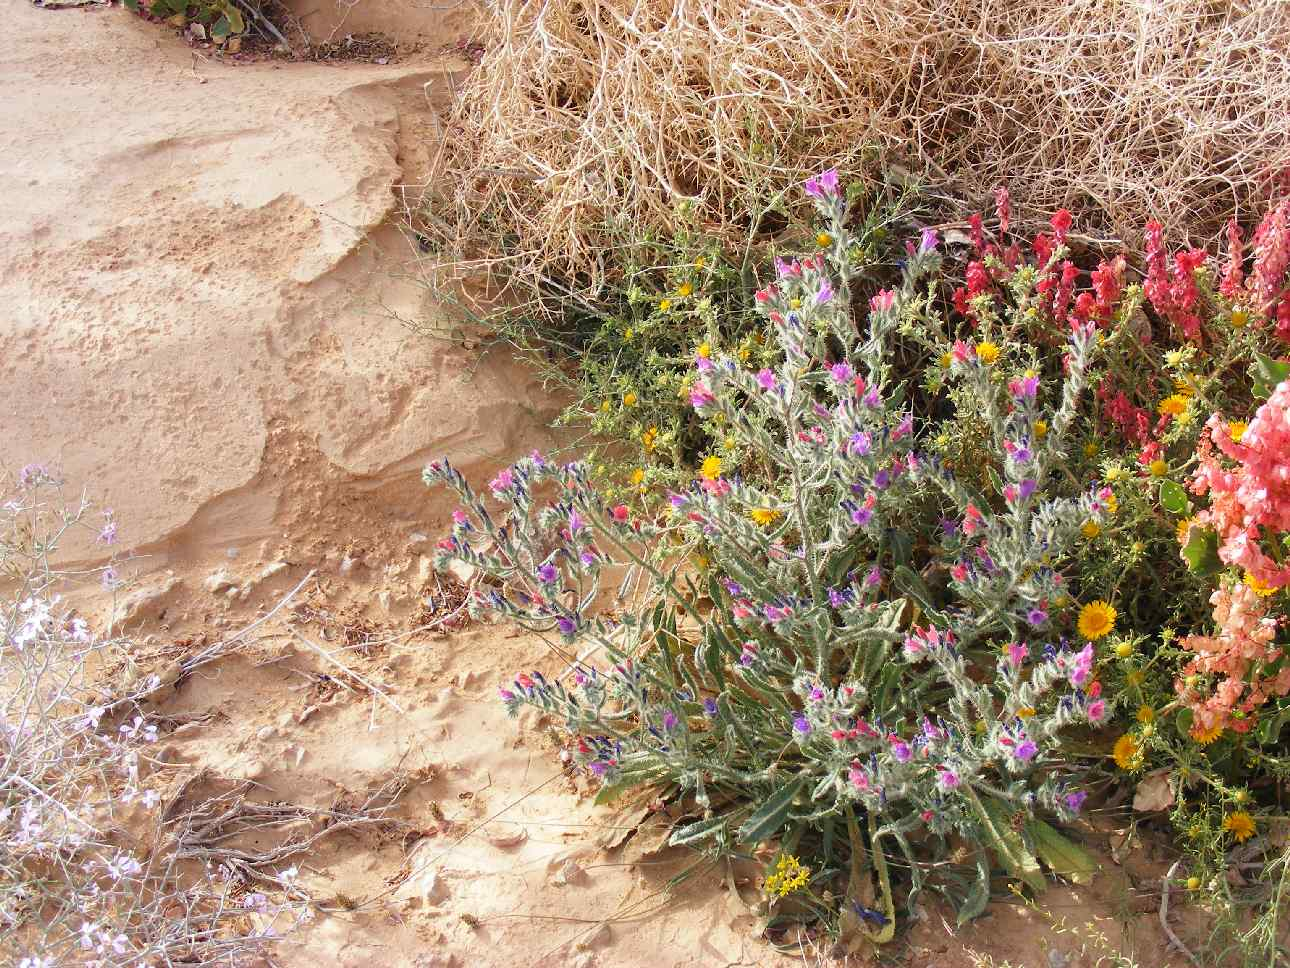 Extraordinary bloom in hard places - Arava 2013, following the floods